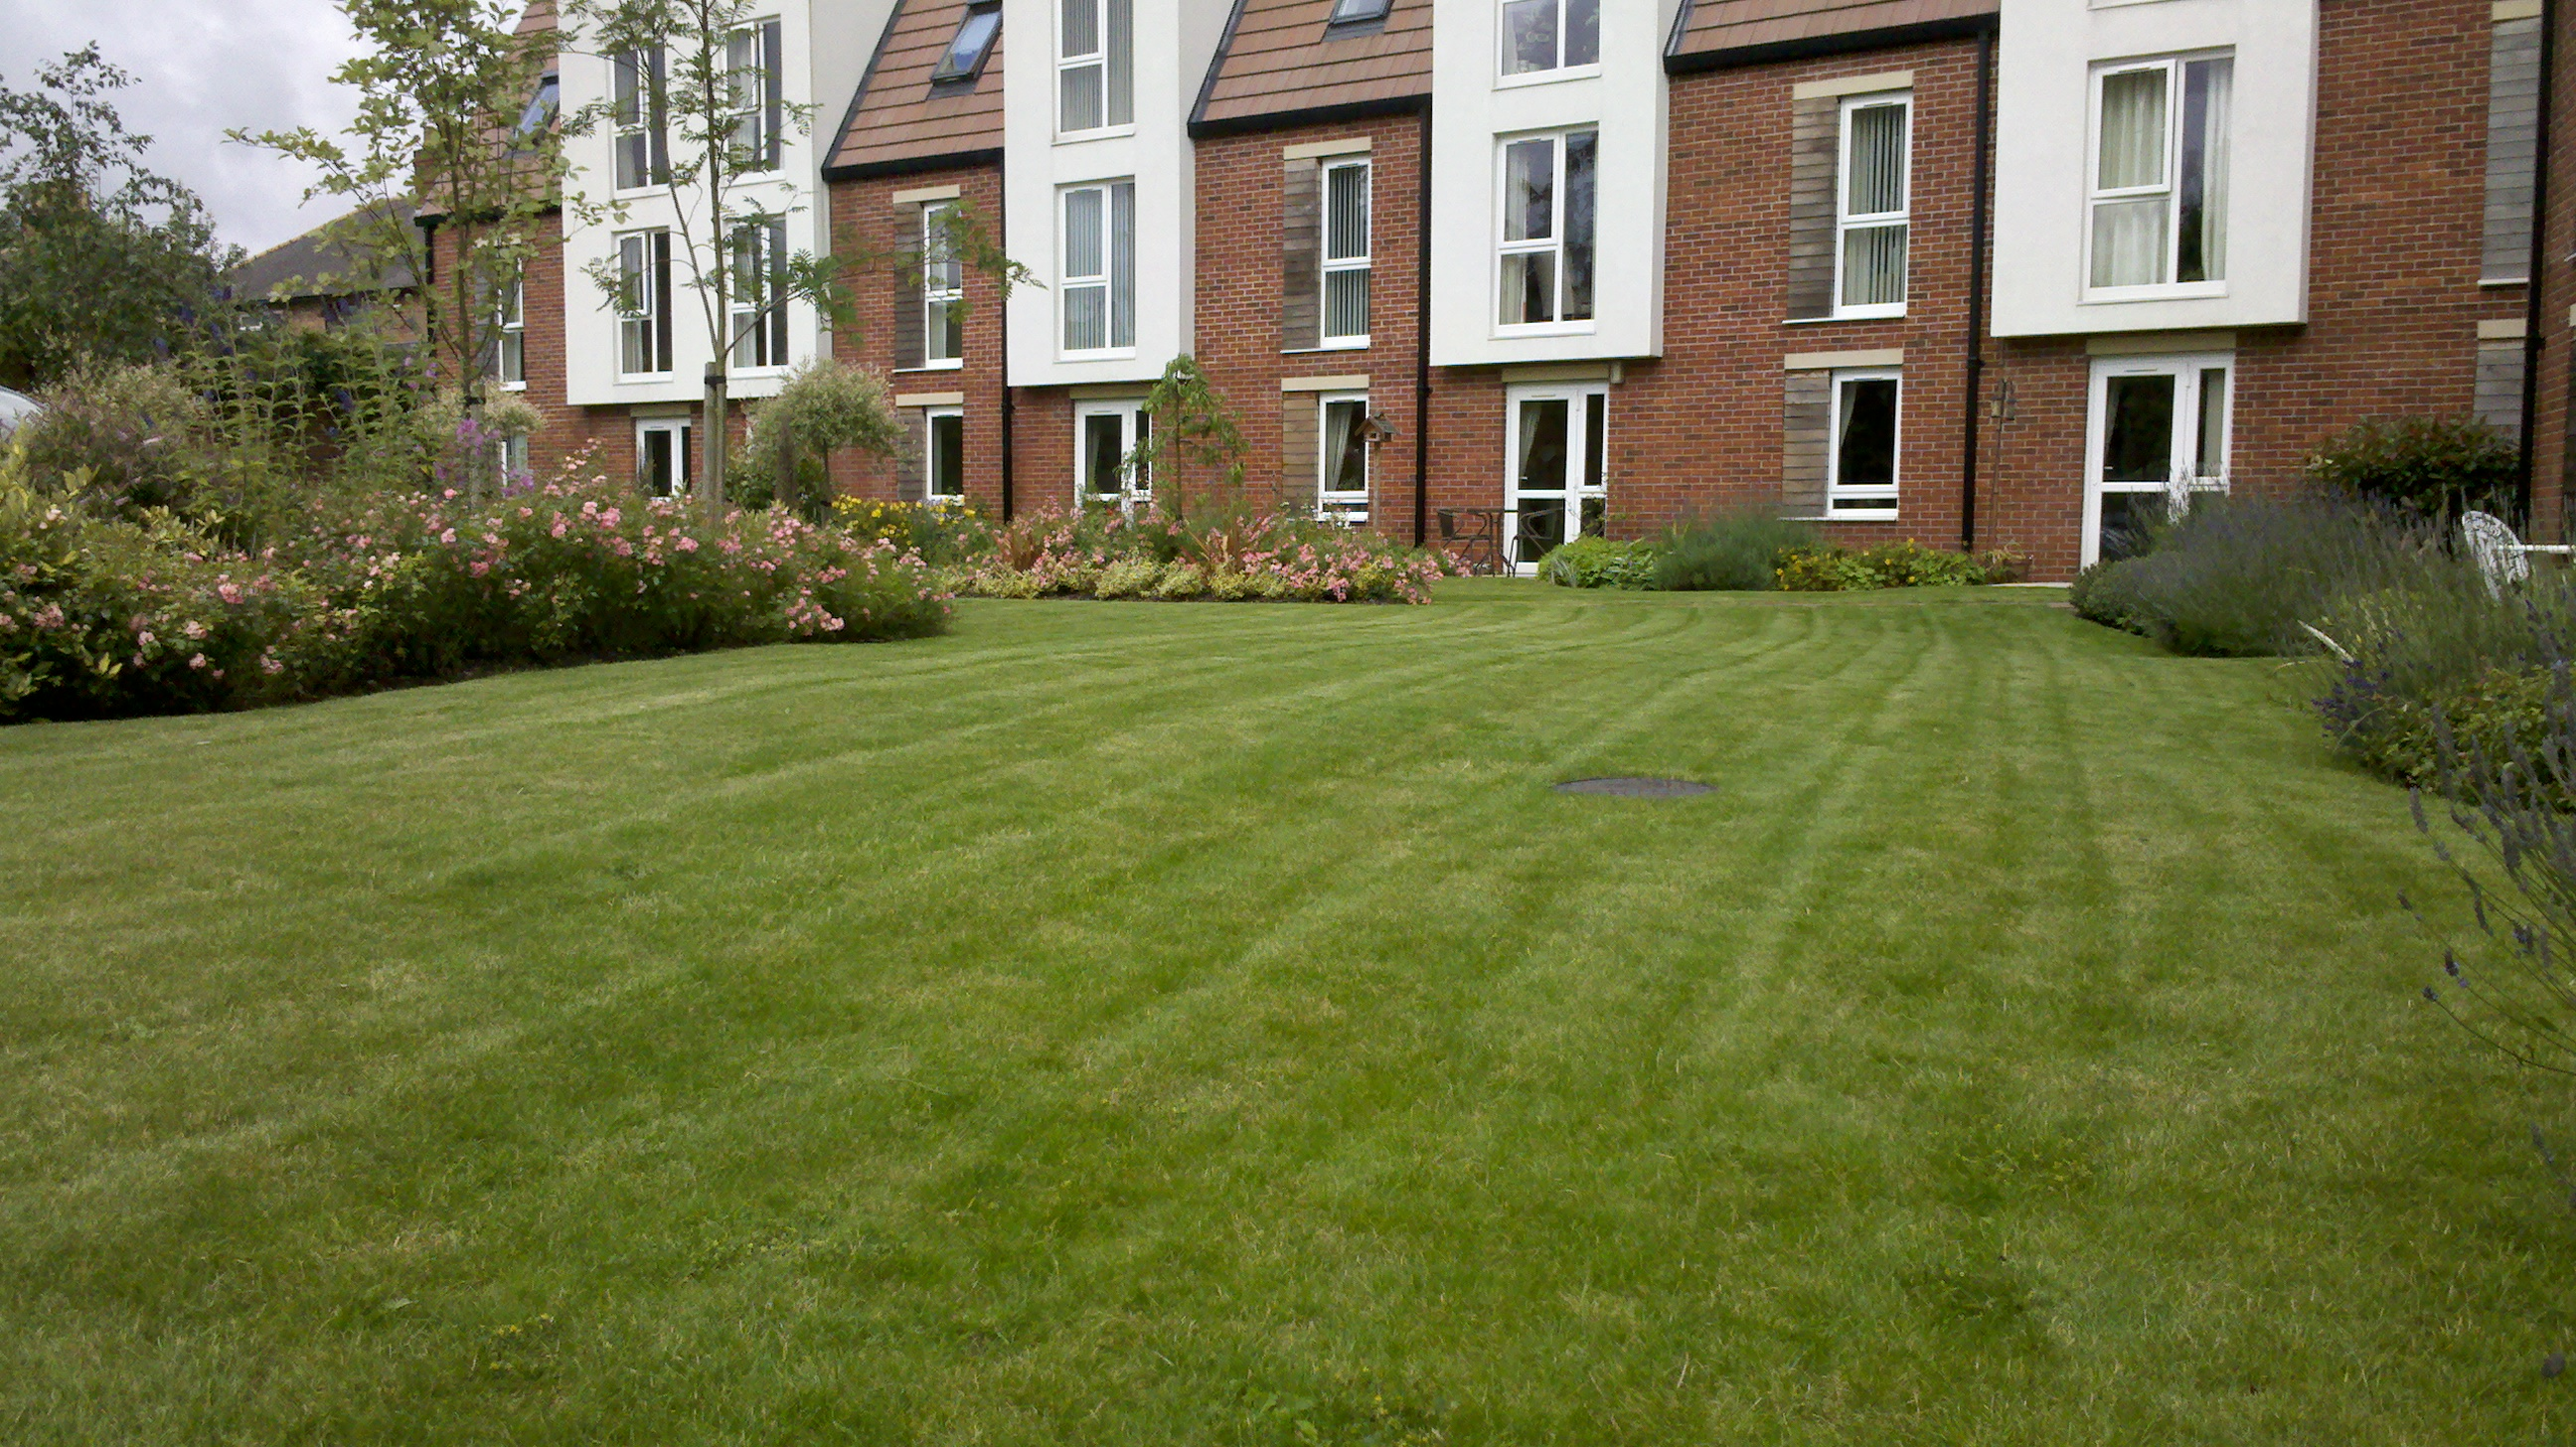 Lawn Mowing Lawn Treatments Nottingham Oxton Southwell Providin